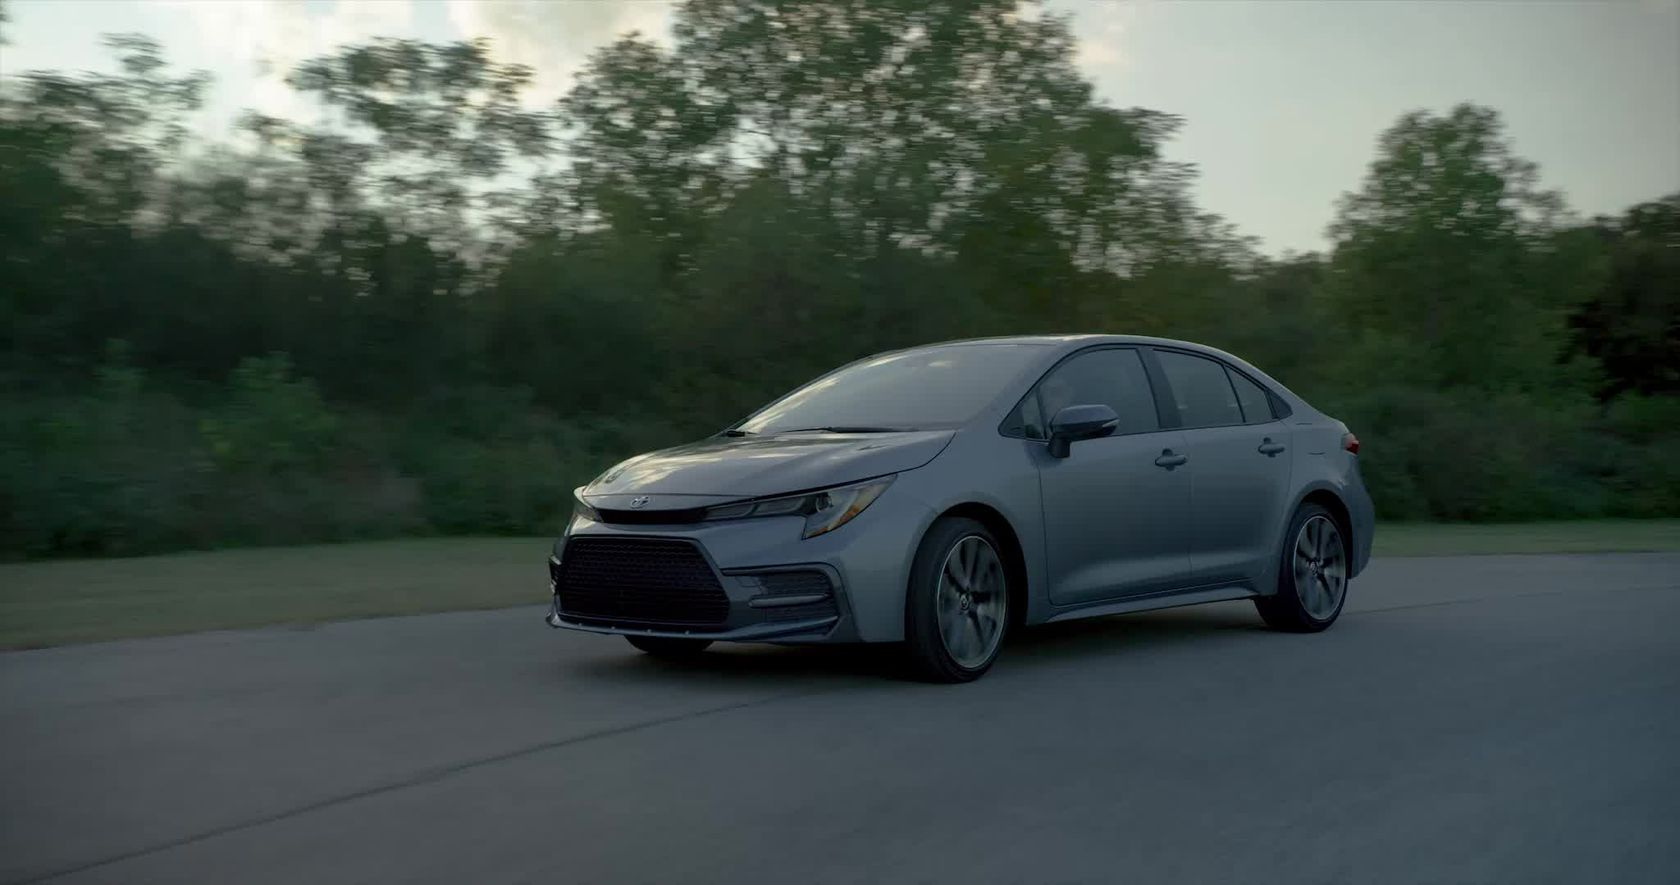 2020 Toyota Corolla Sedan B-roll